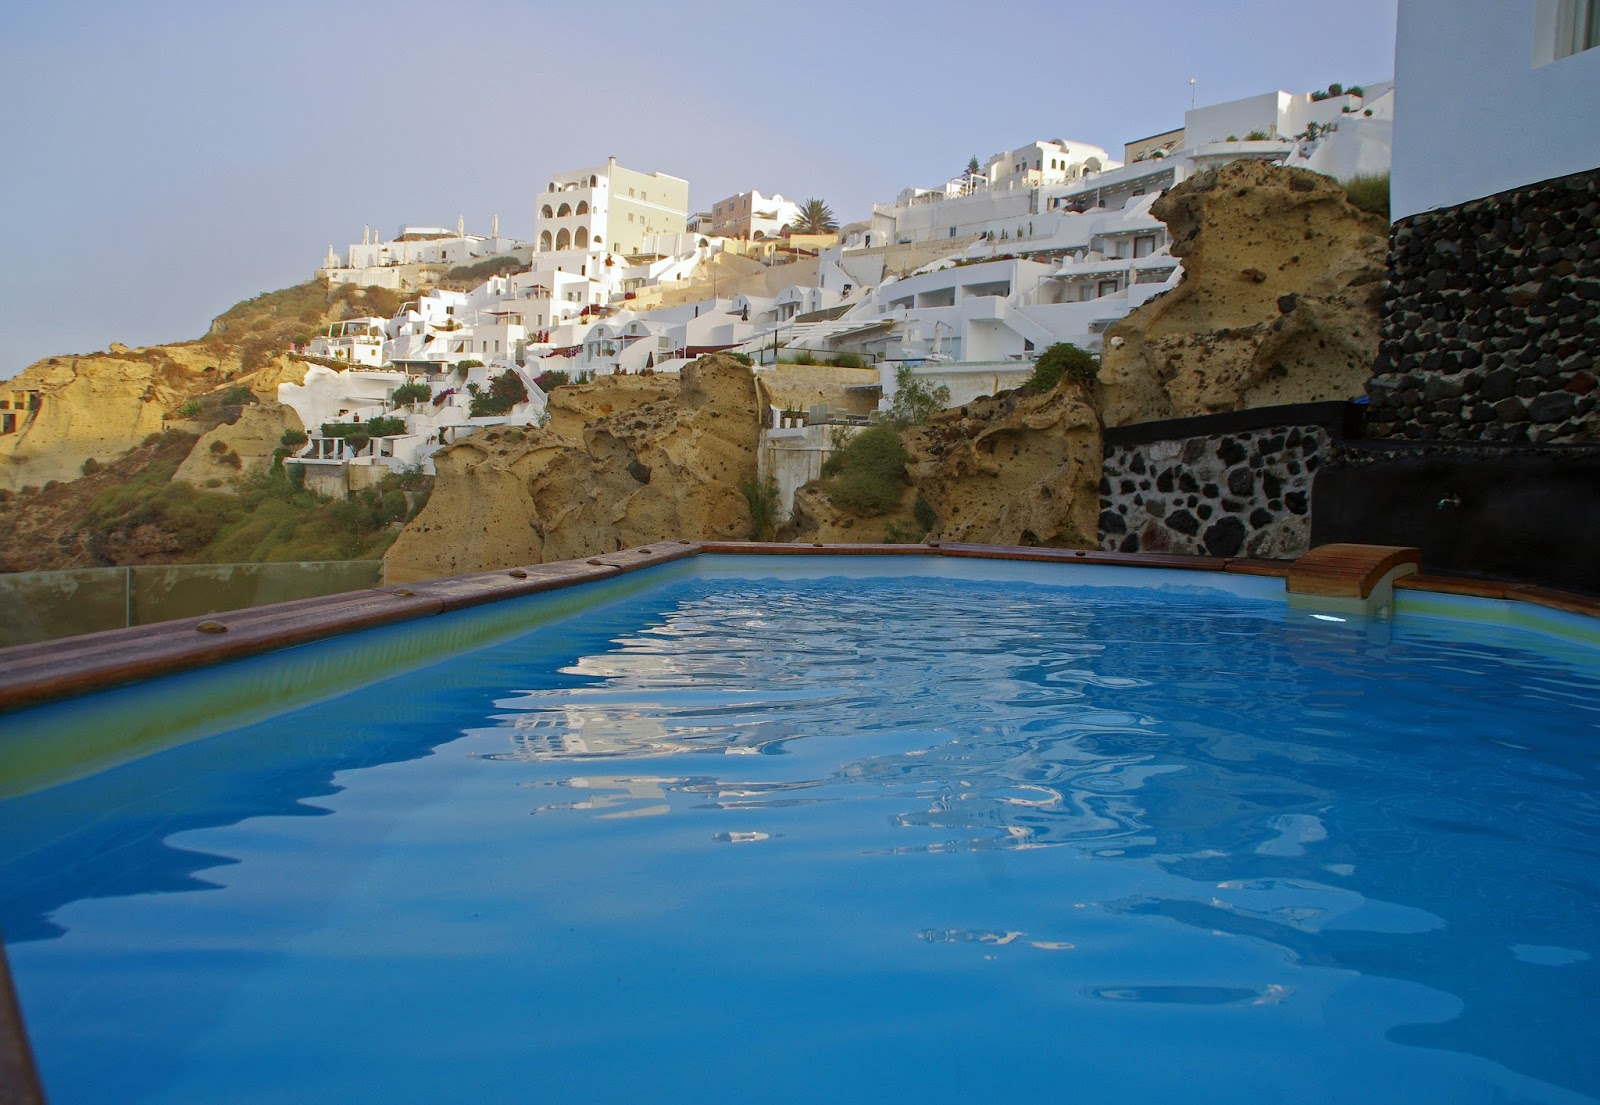 Swimming pool at Nostos Apartments Oia Santorini